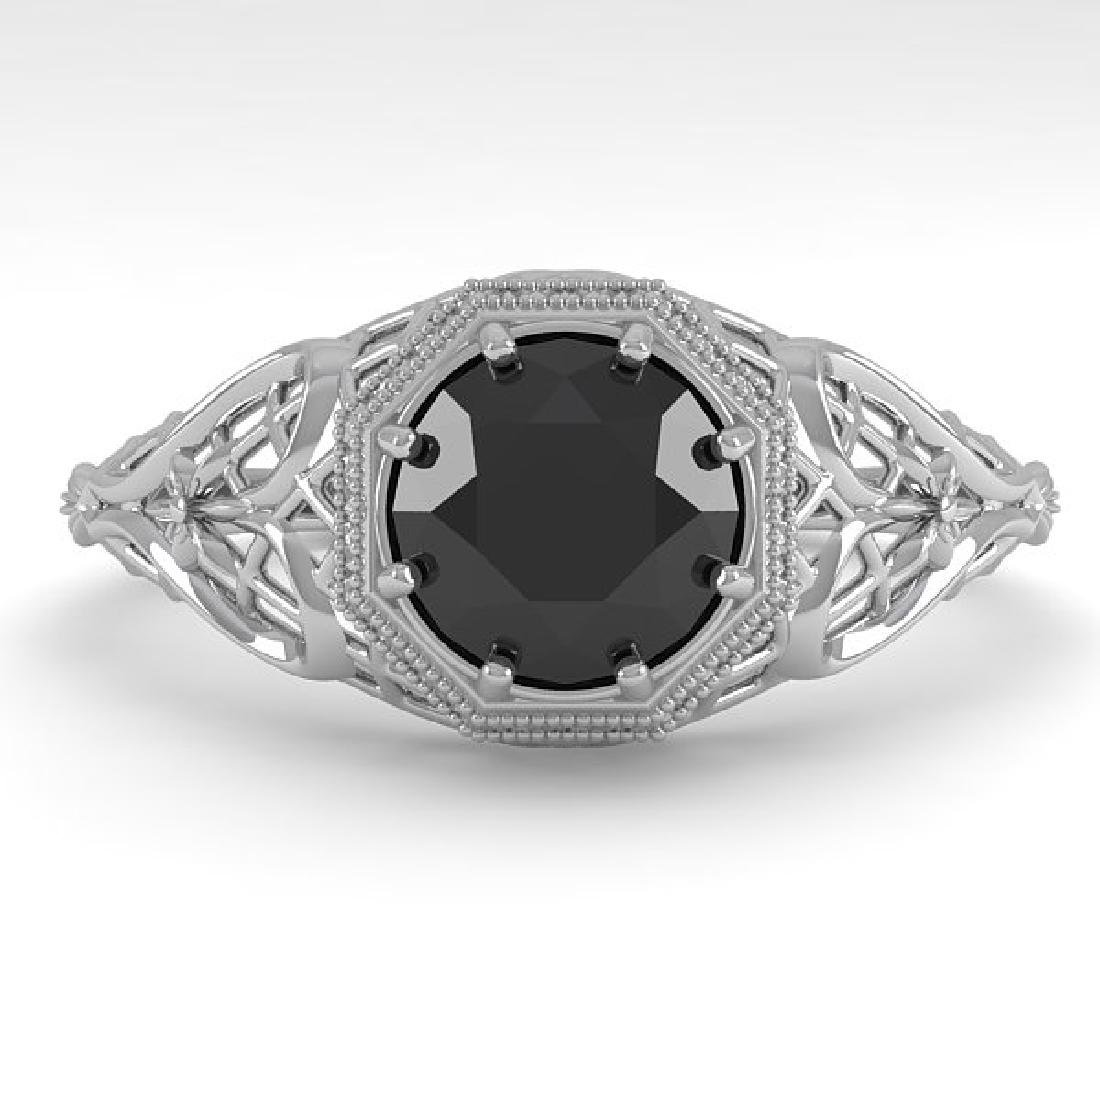 1.0 CTW Black Certified Diamond Ring Art Deco 14K White